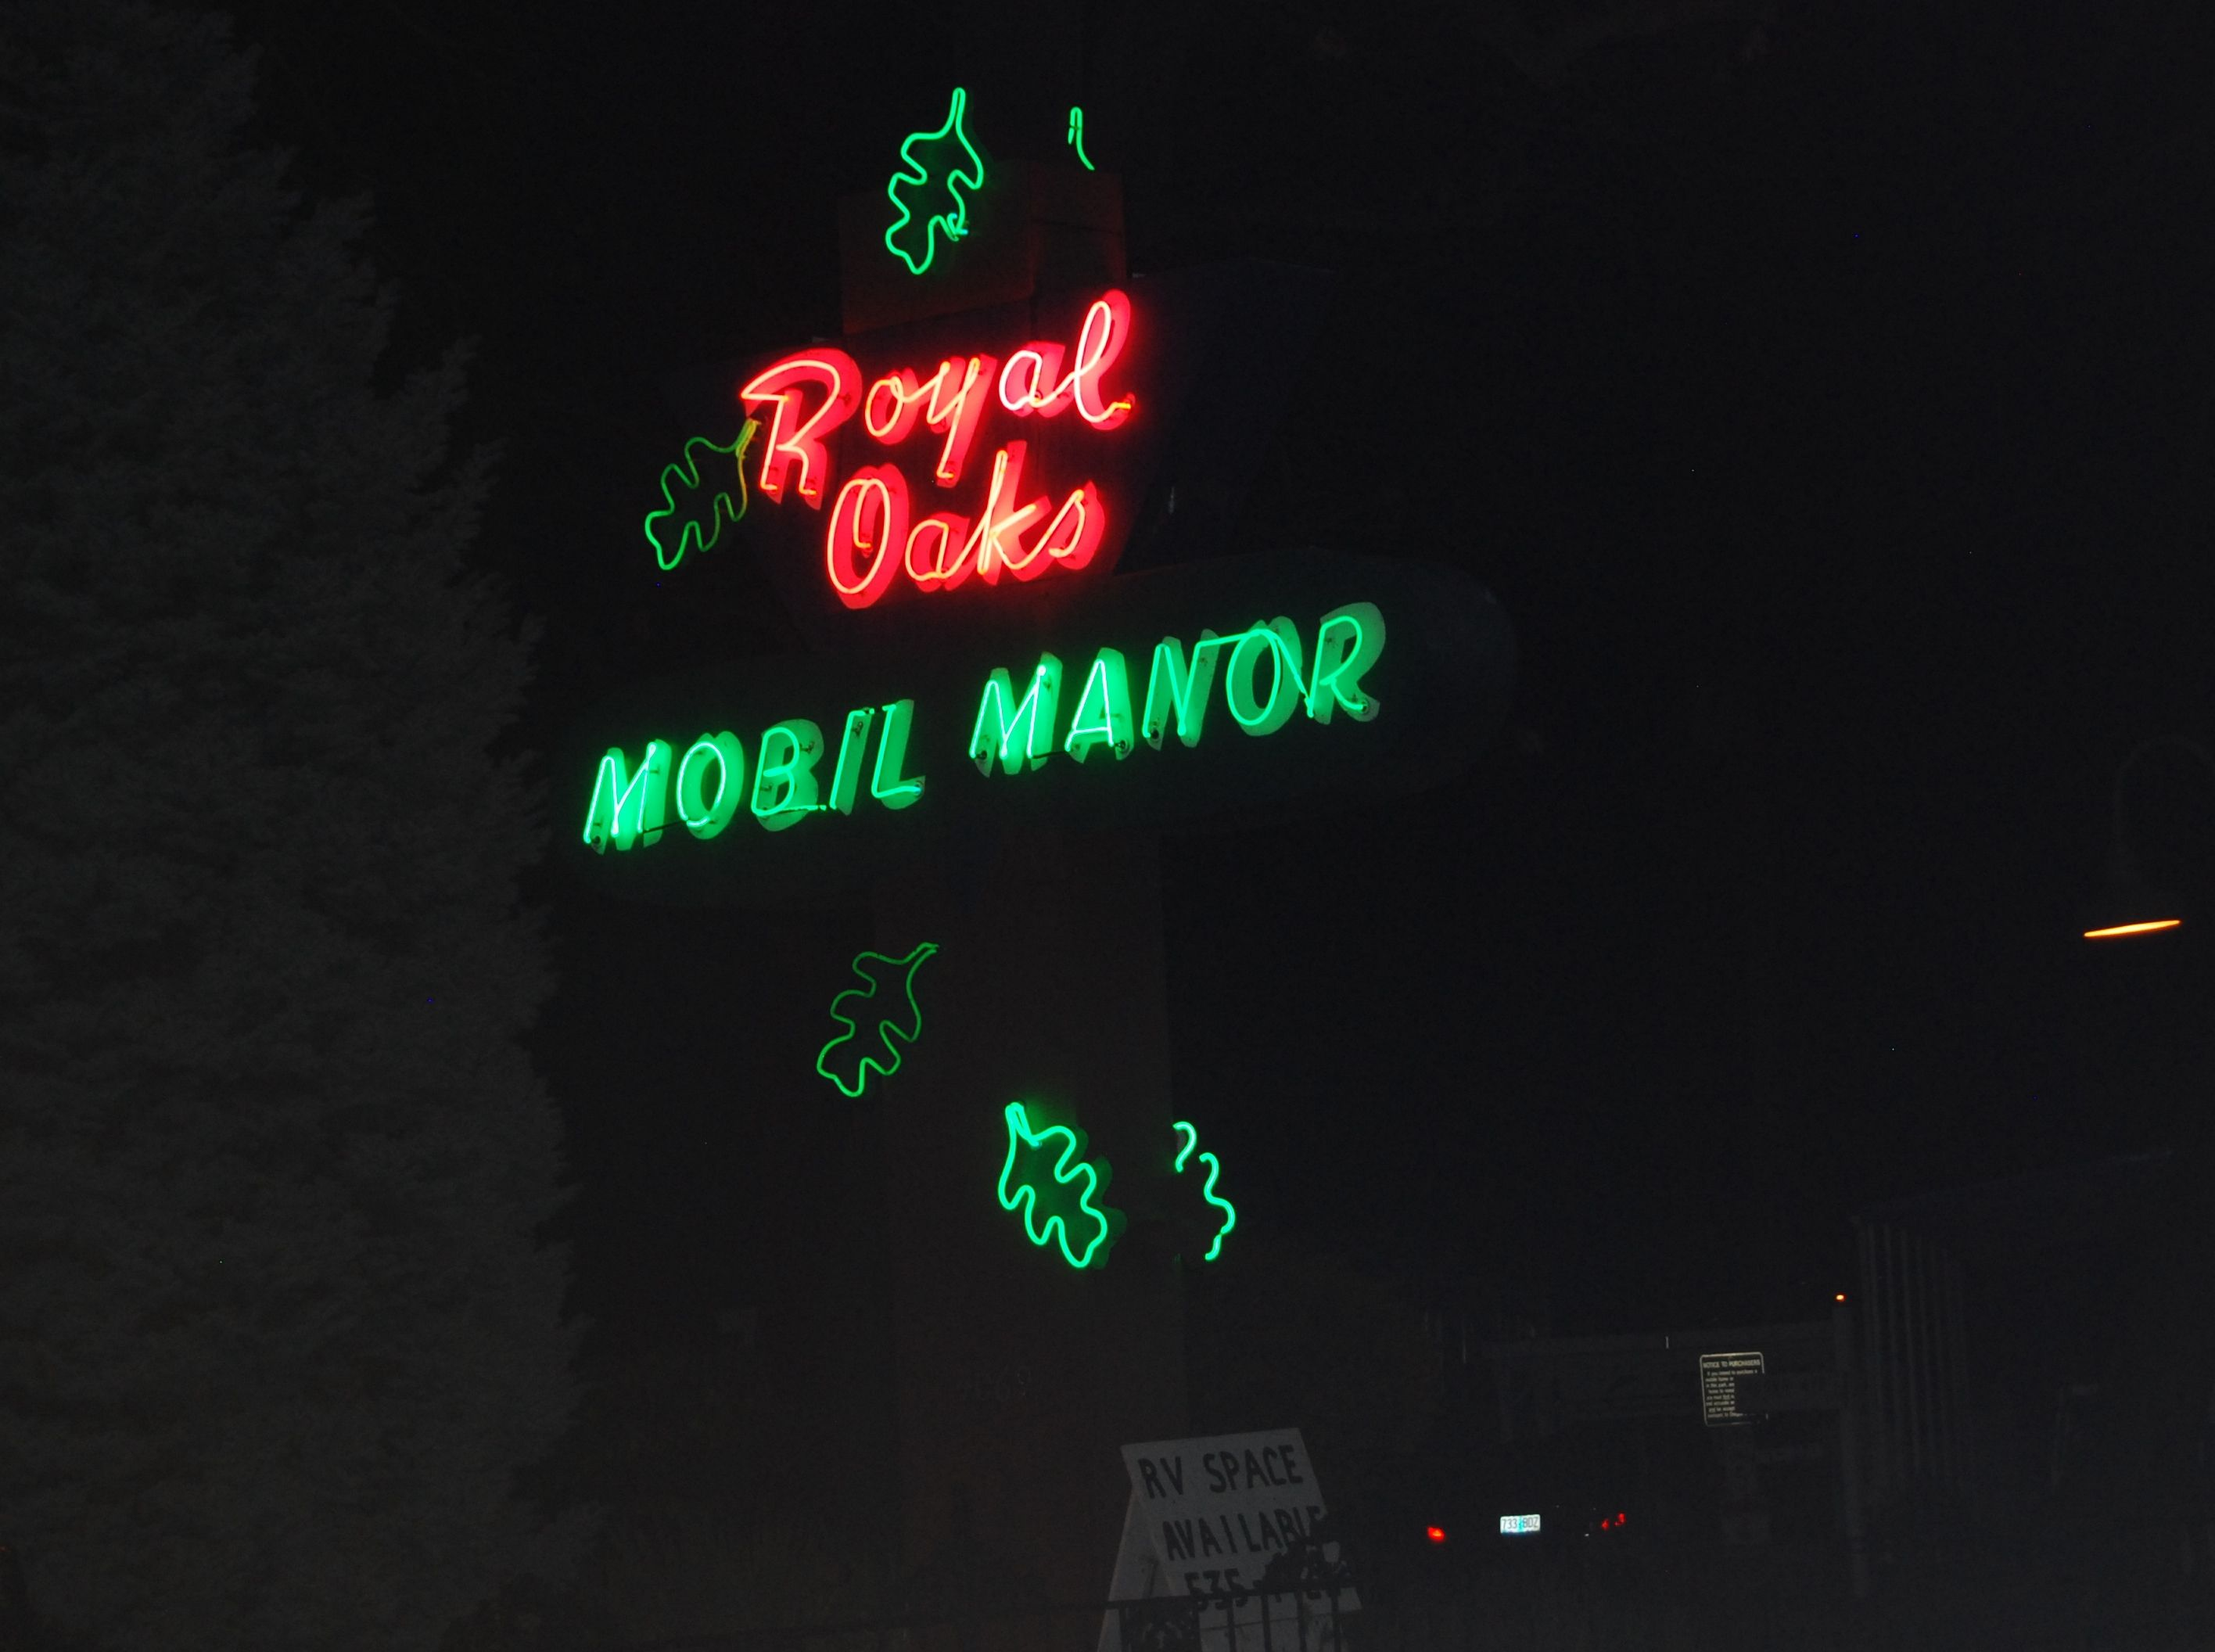 Oregon · southern · the royal oaks mobil manor is on highway 99 in phoenix this sign is as